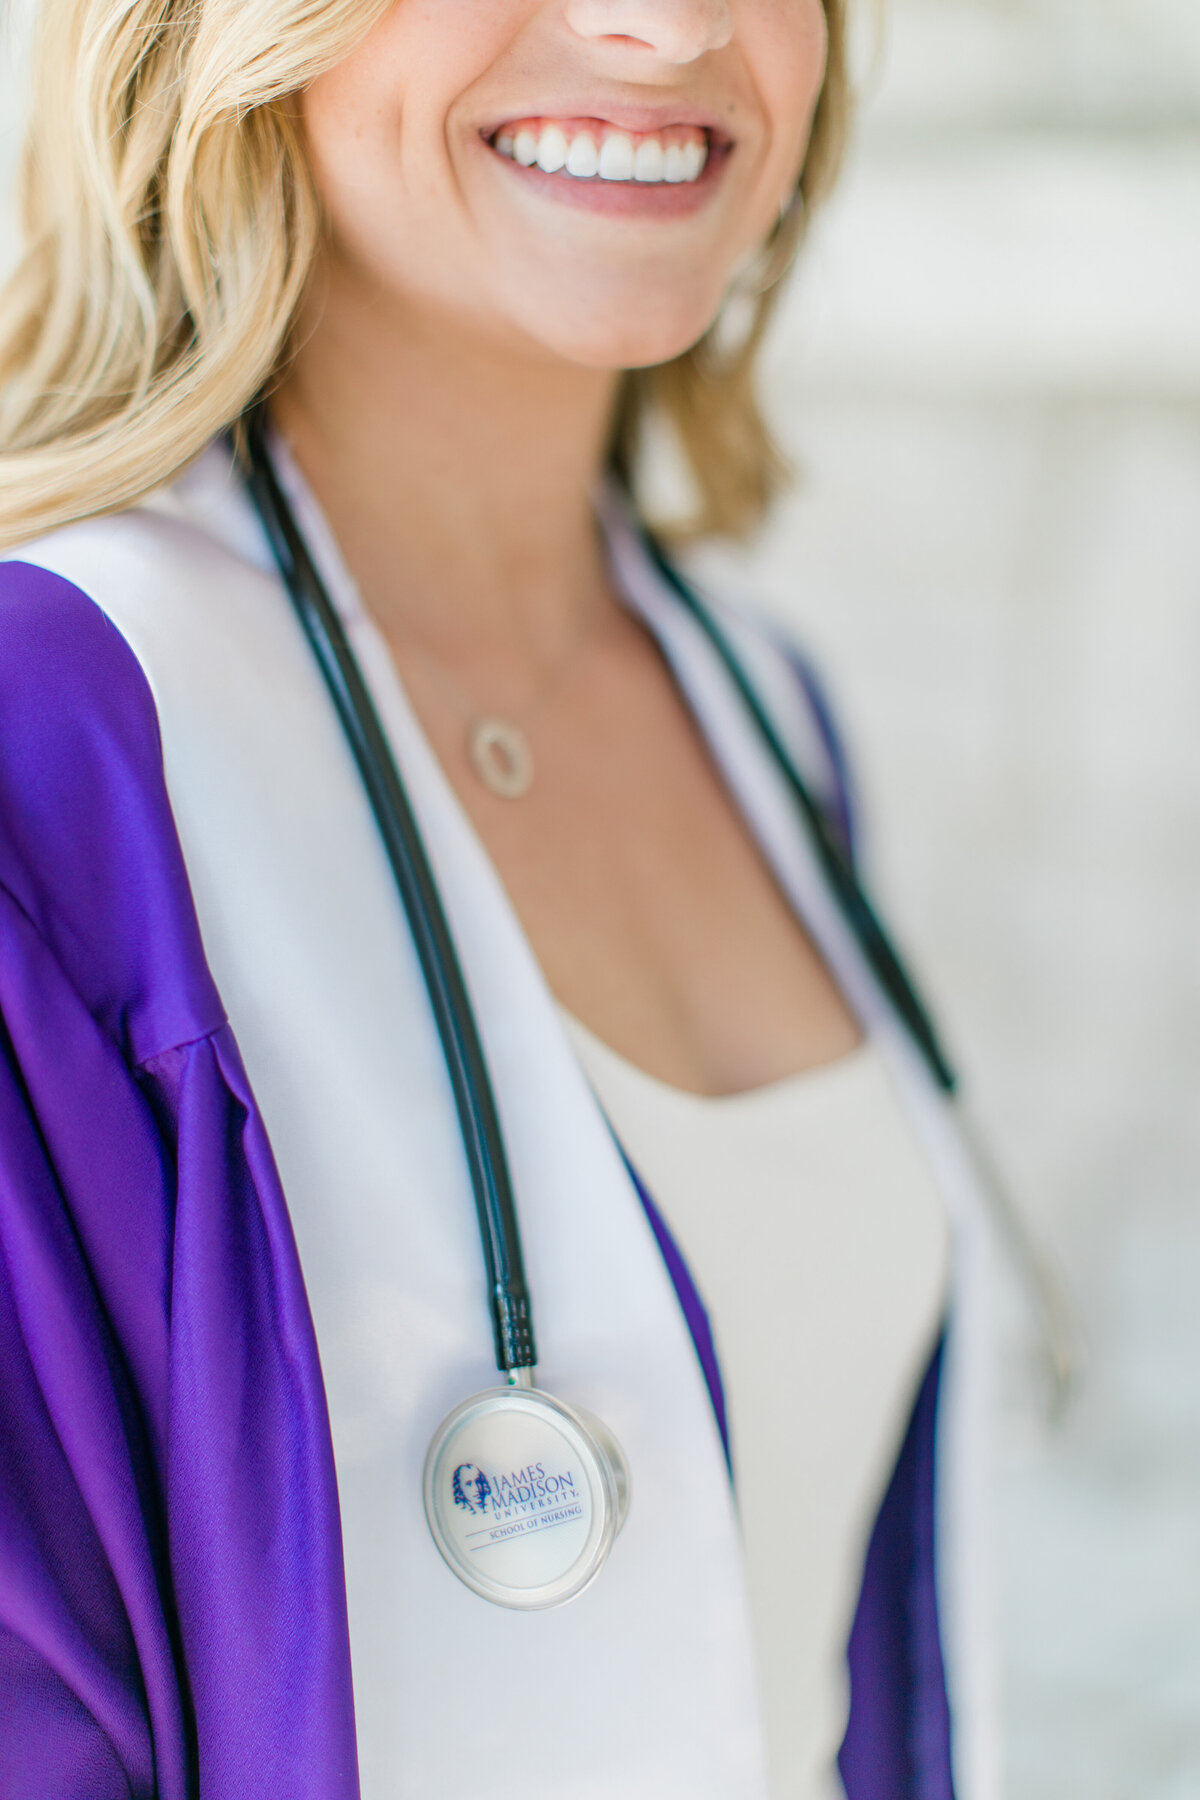 Brooke_Gore_JMU_Senior_Graduation_Session_2020_Angelika_Johns_Photography-2277